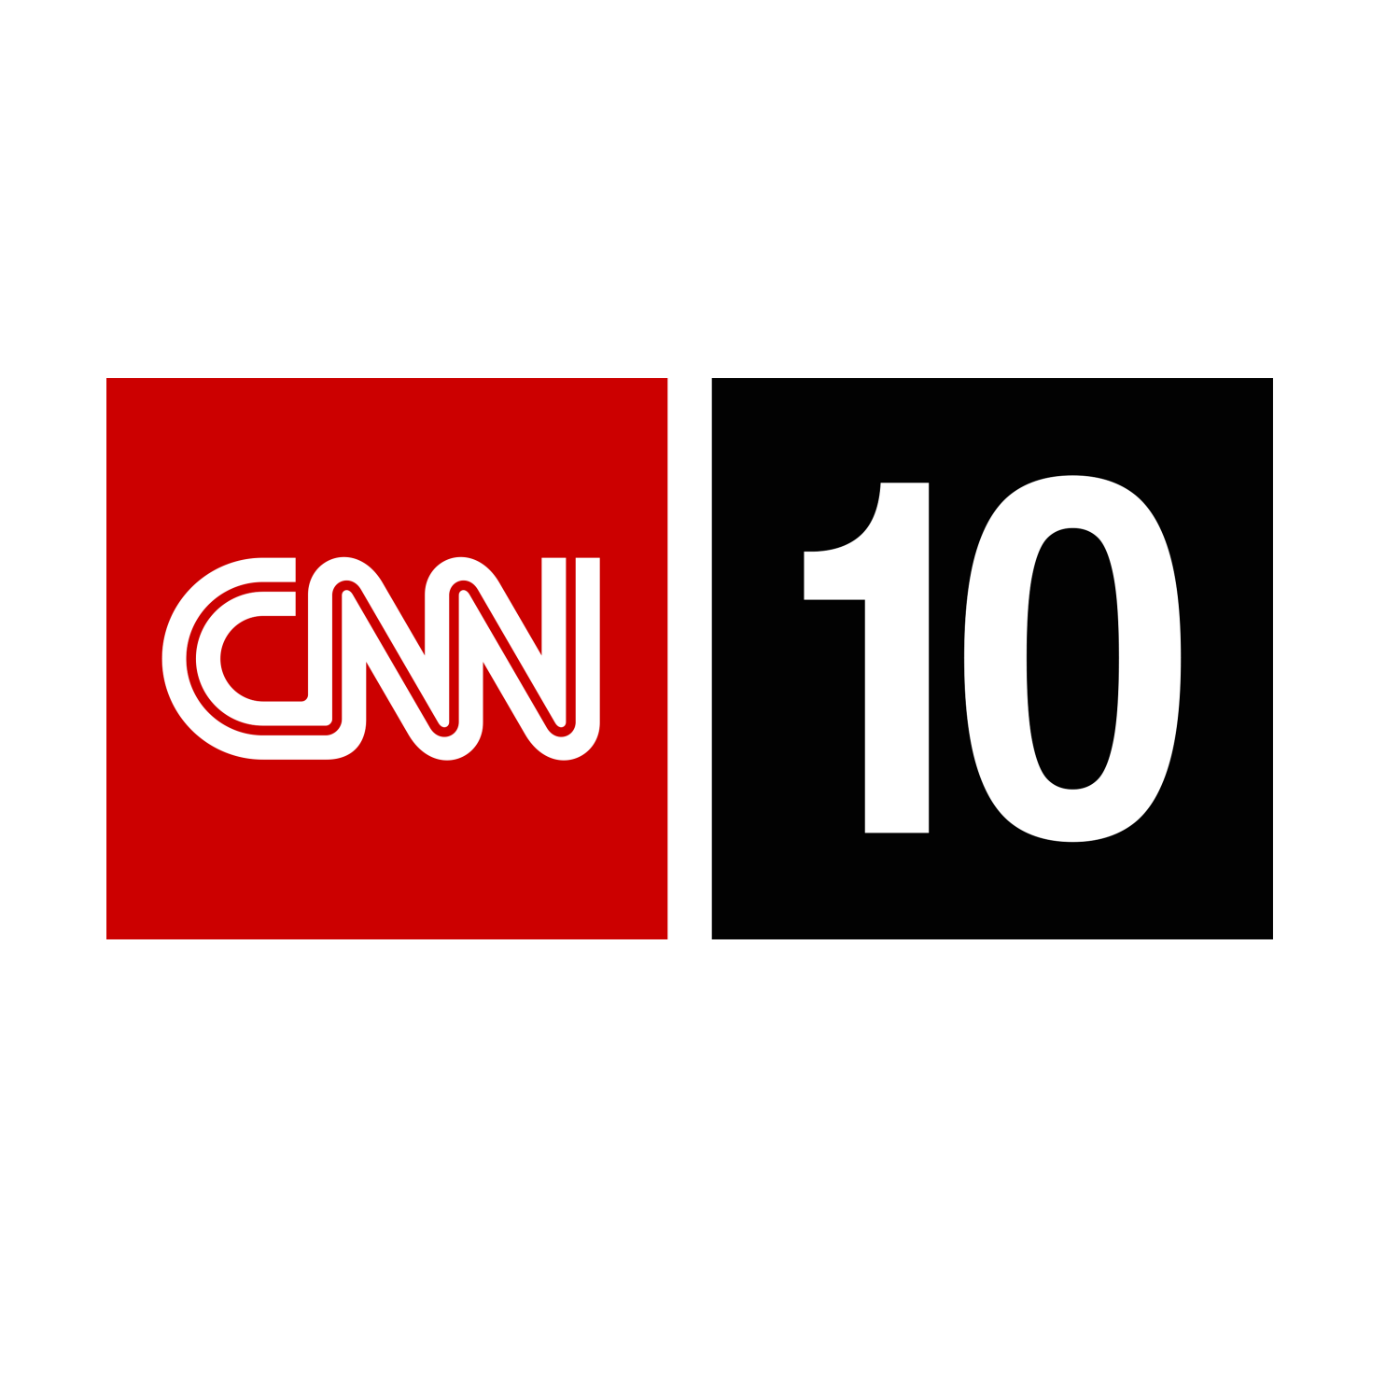 CNN Student News - January 29, 2013